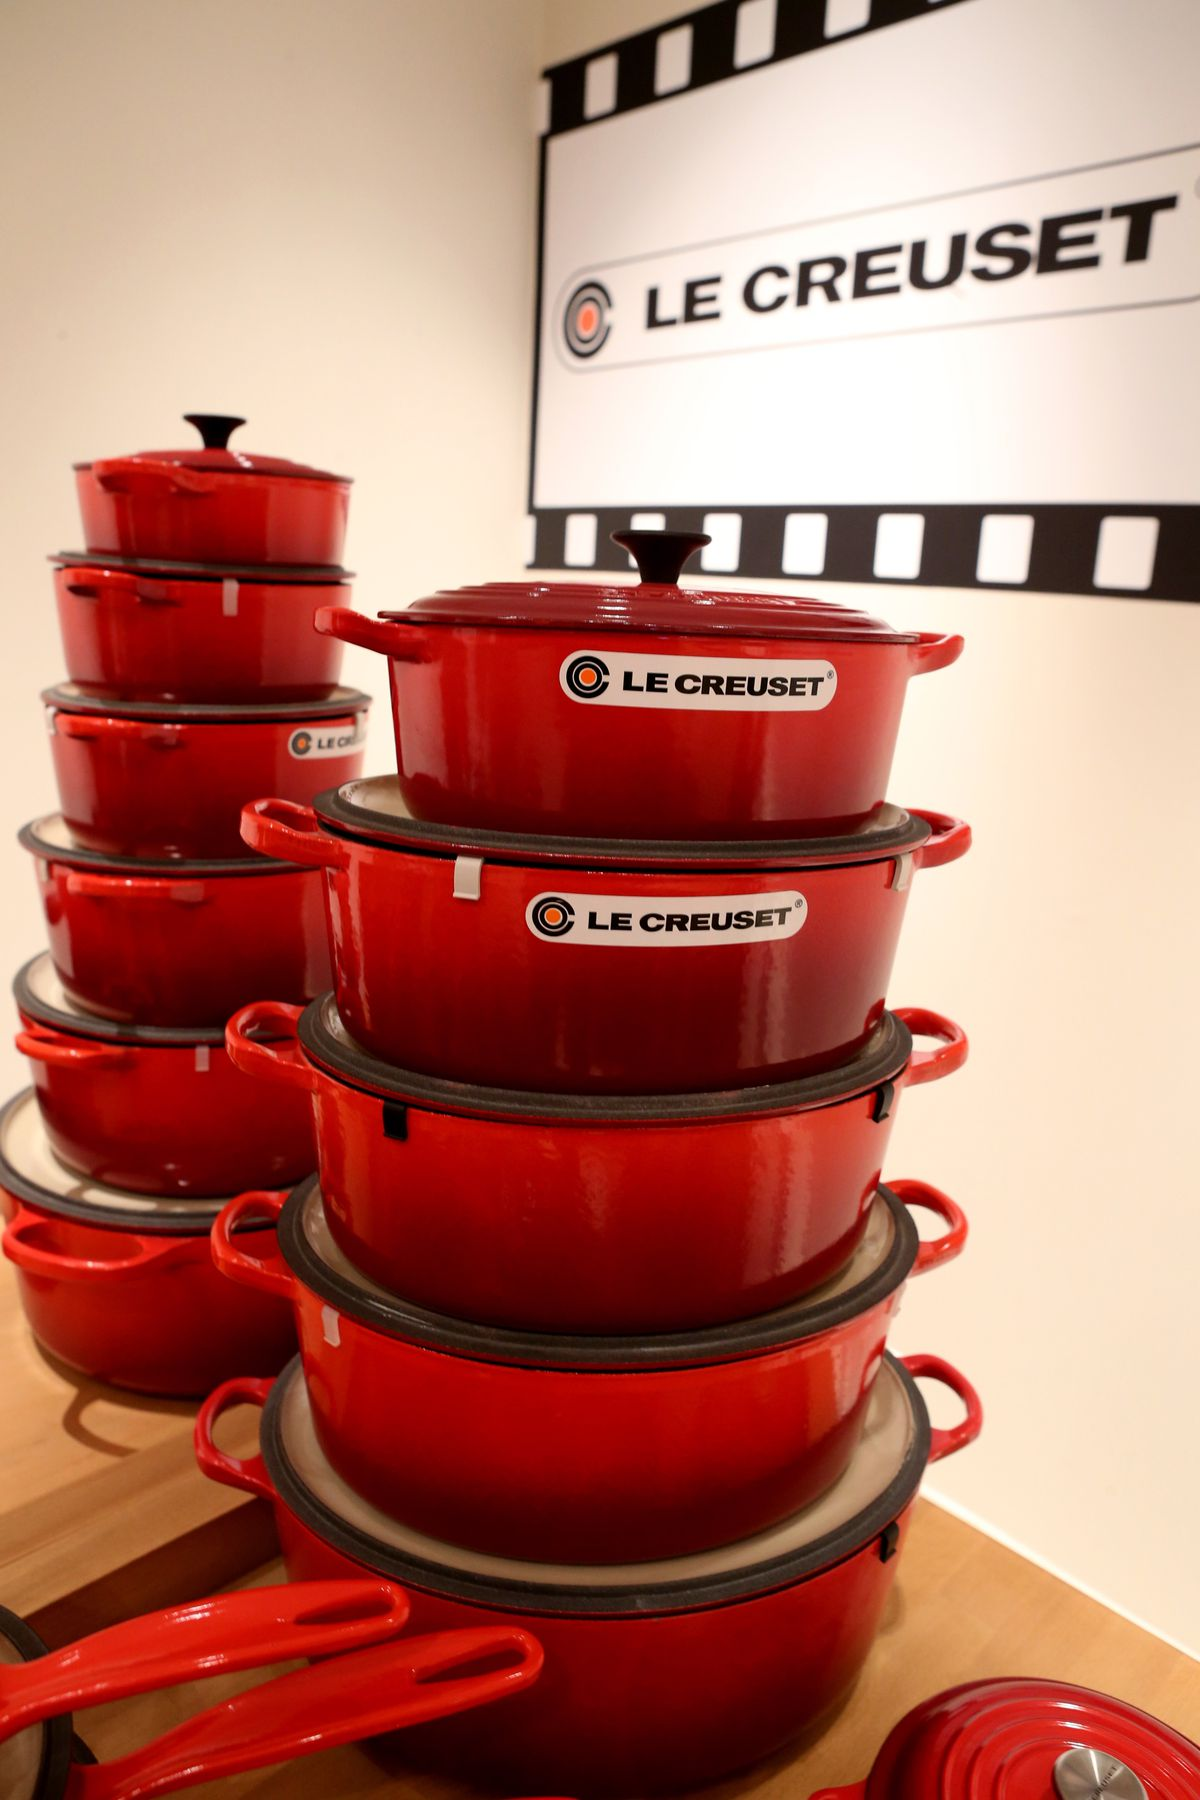 Stack of red Le Creuset Dutch ovens of different sizes